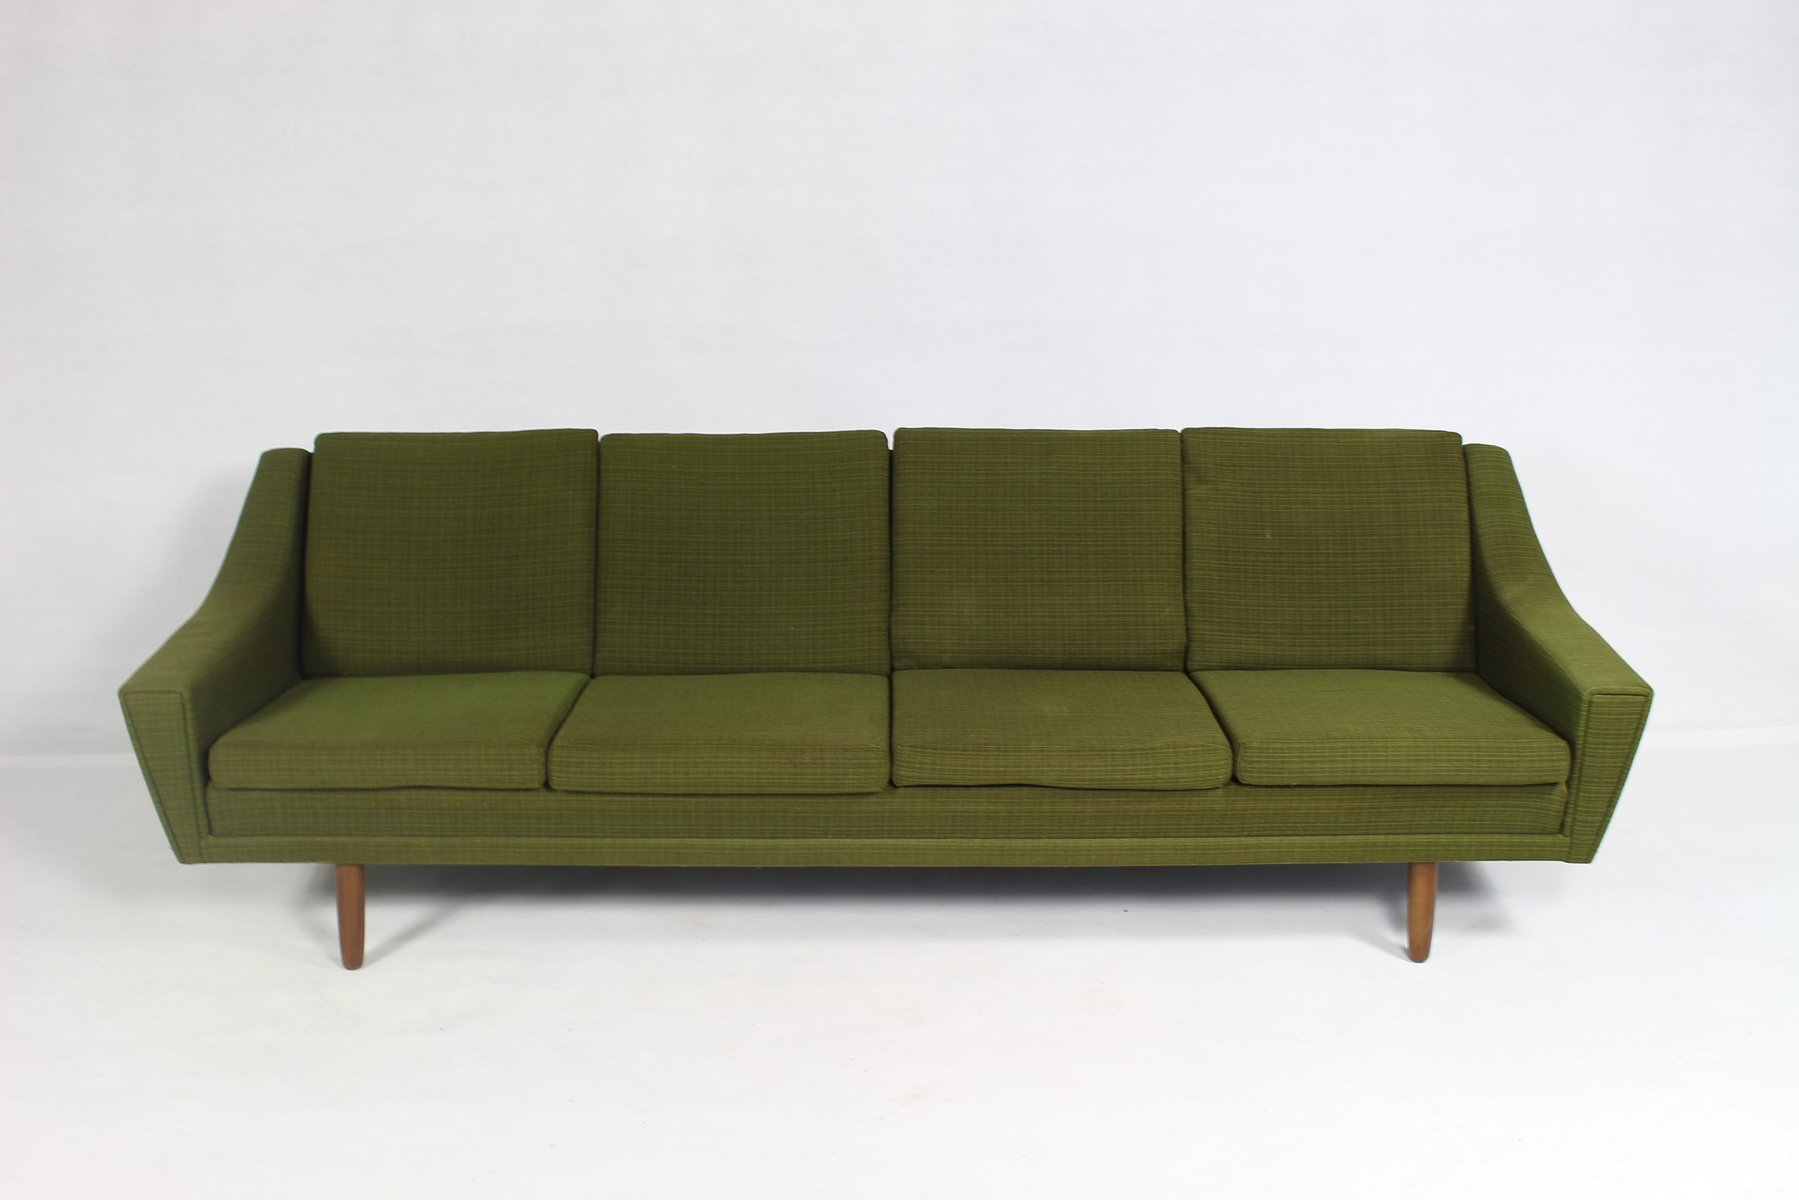 4 Seater Sofa Australia Scandinavian 4 Seater Sofa 1960s For Sale At Pamono